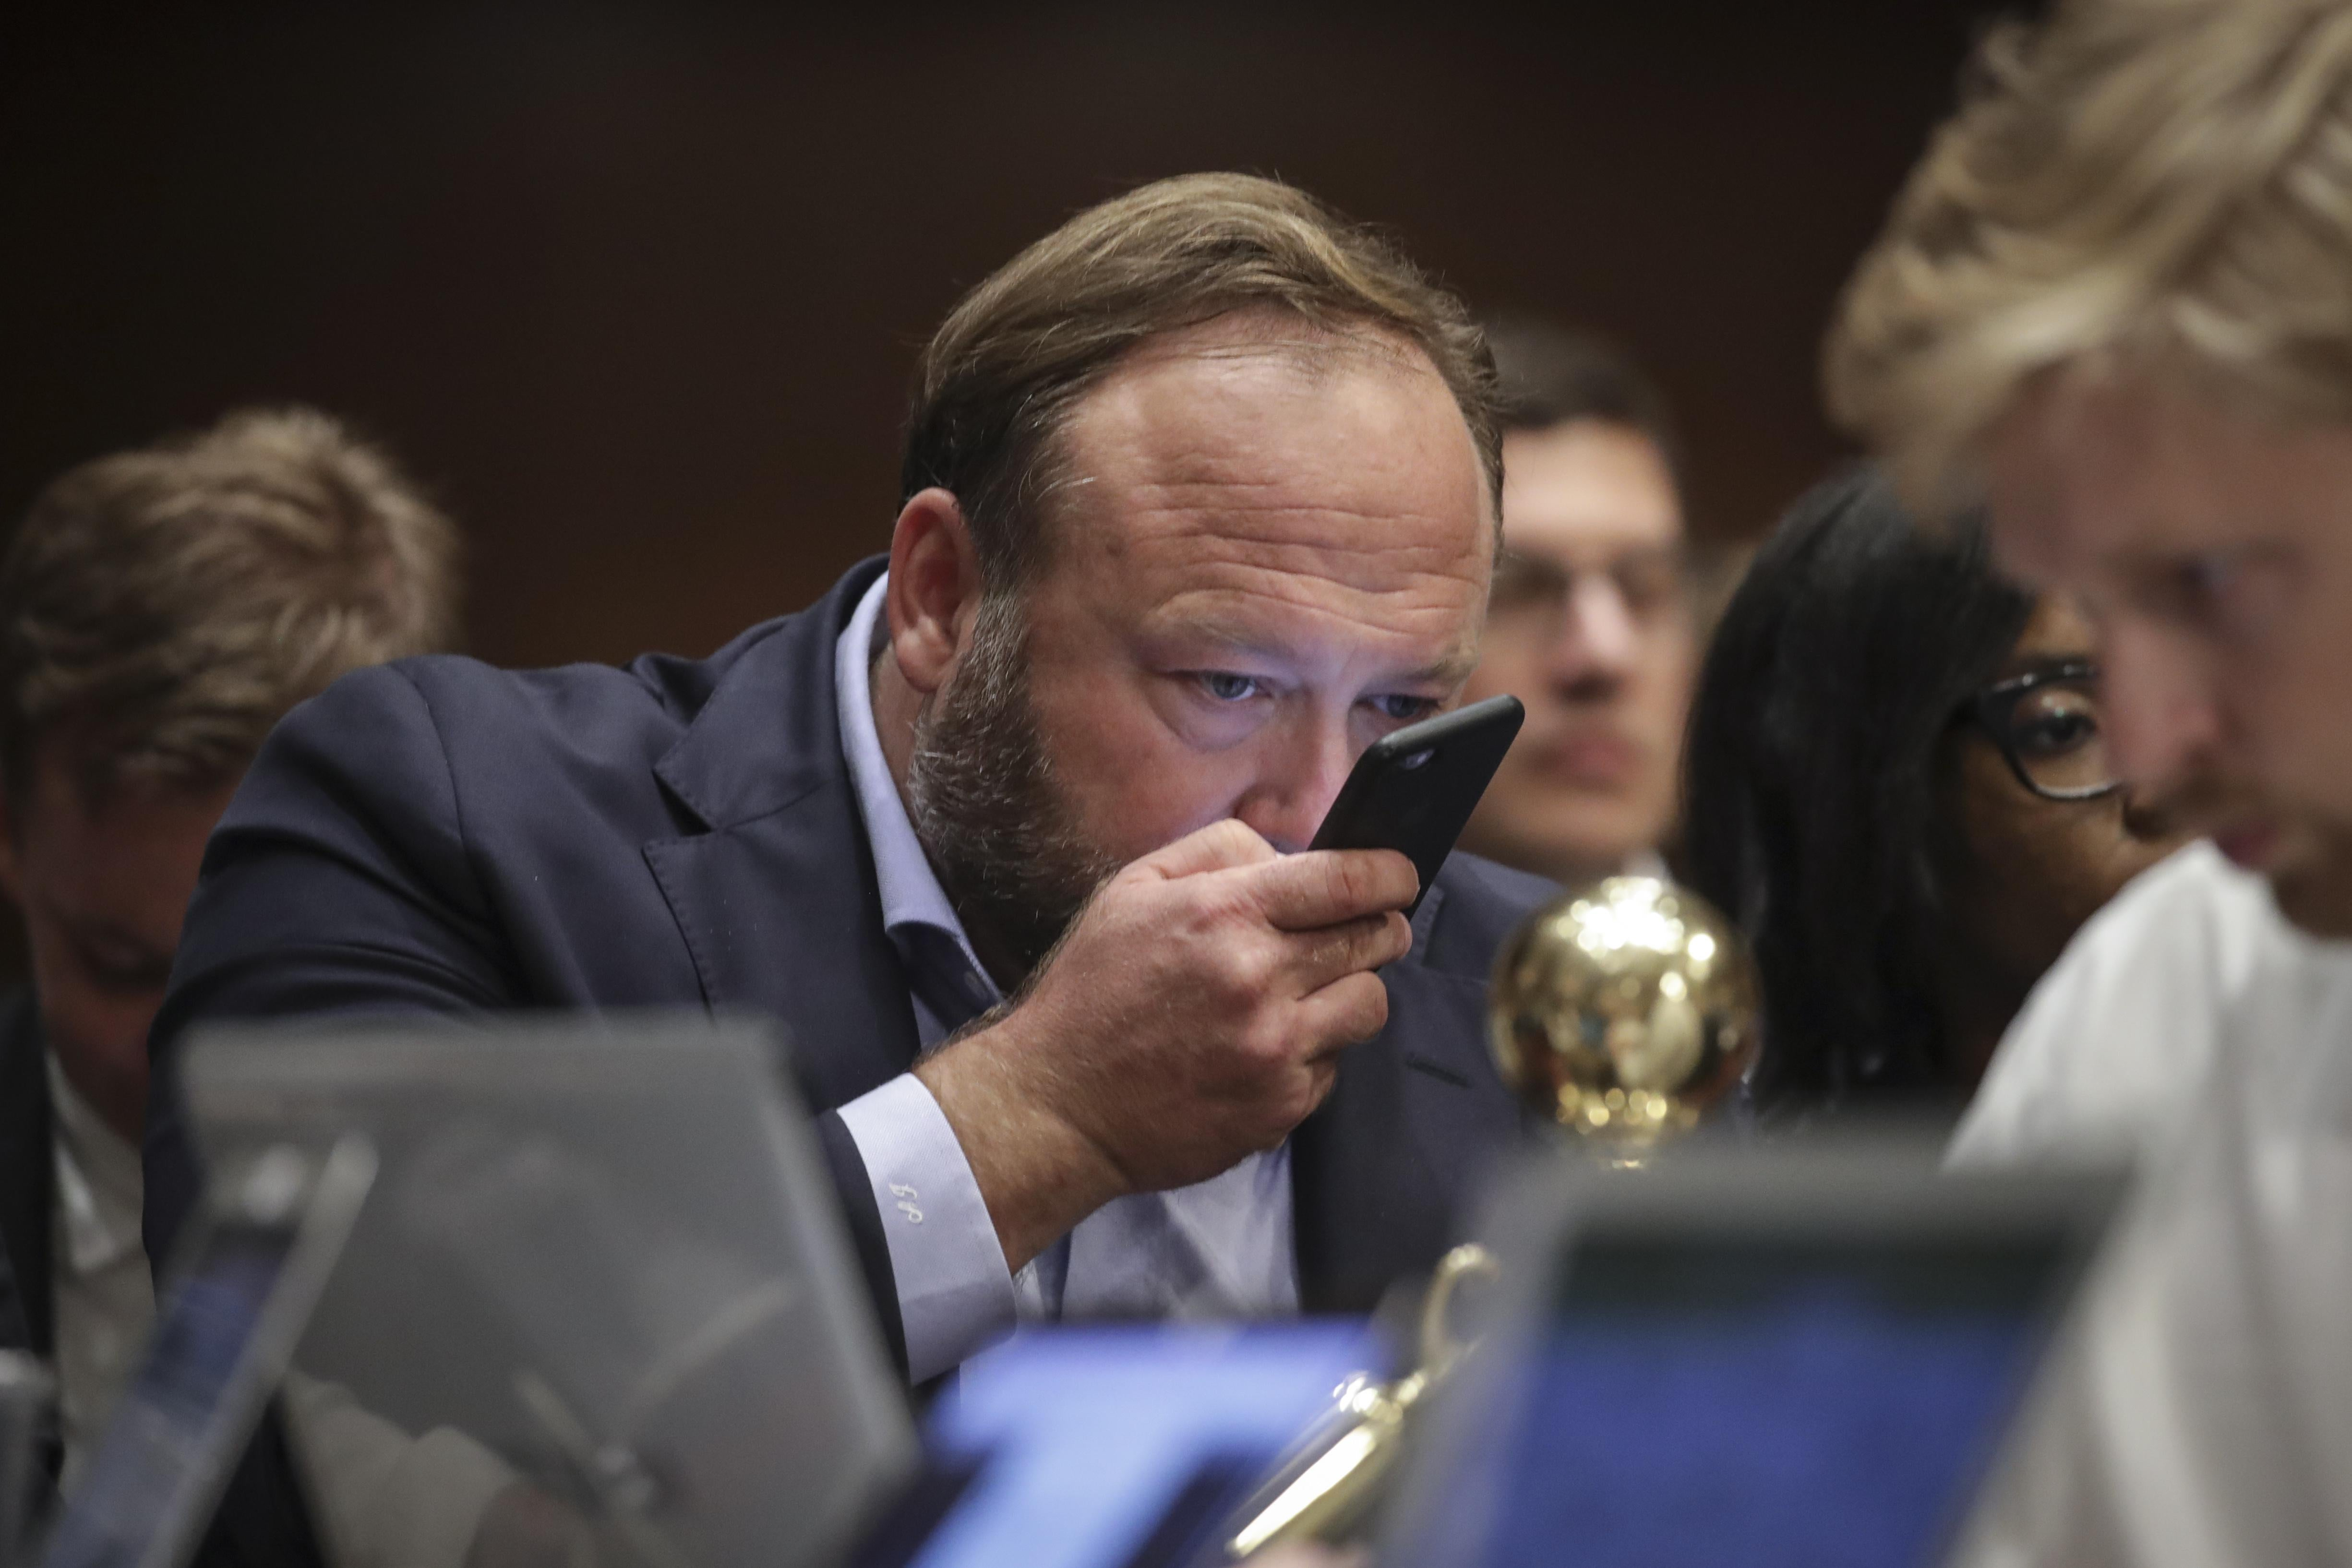 WASHINGTON, DC - SEPTEMBER 5: Alex Jones of InfoWars speaks into his phone during a Senate Intelligence Committee hearing concerning foreign influence operations' use of social media platforms, on Capitol Hill, September 5, 2018 in Washington, DC. Twitter CEO Jack Dorsey and Facebook chief operating officer Sheryl Sandberg faced questions about how foreign operatives use their platforms in attempts to influence and manipulate public opinion. (Photo by Drew Angerer/Getty Images)